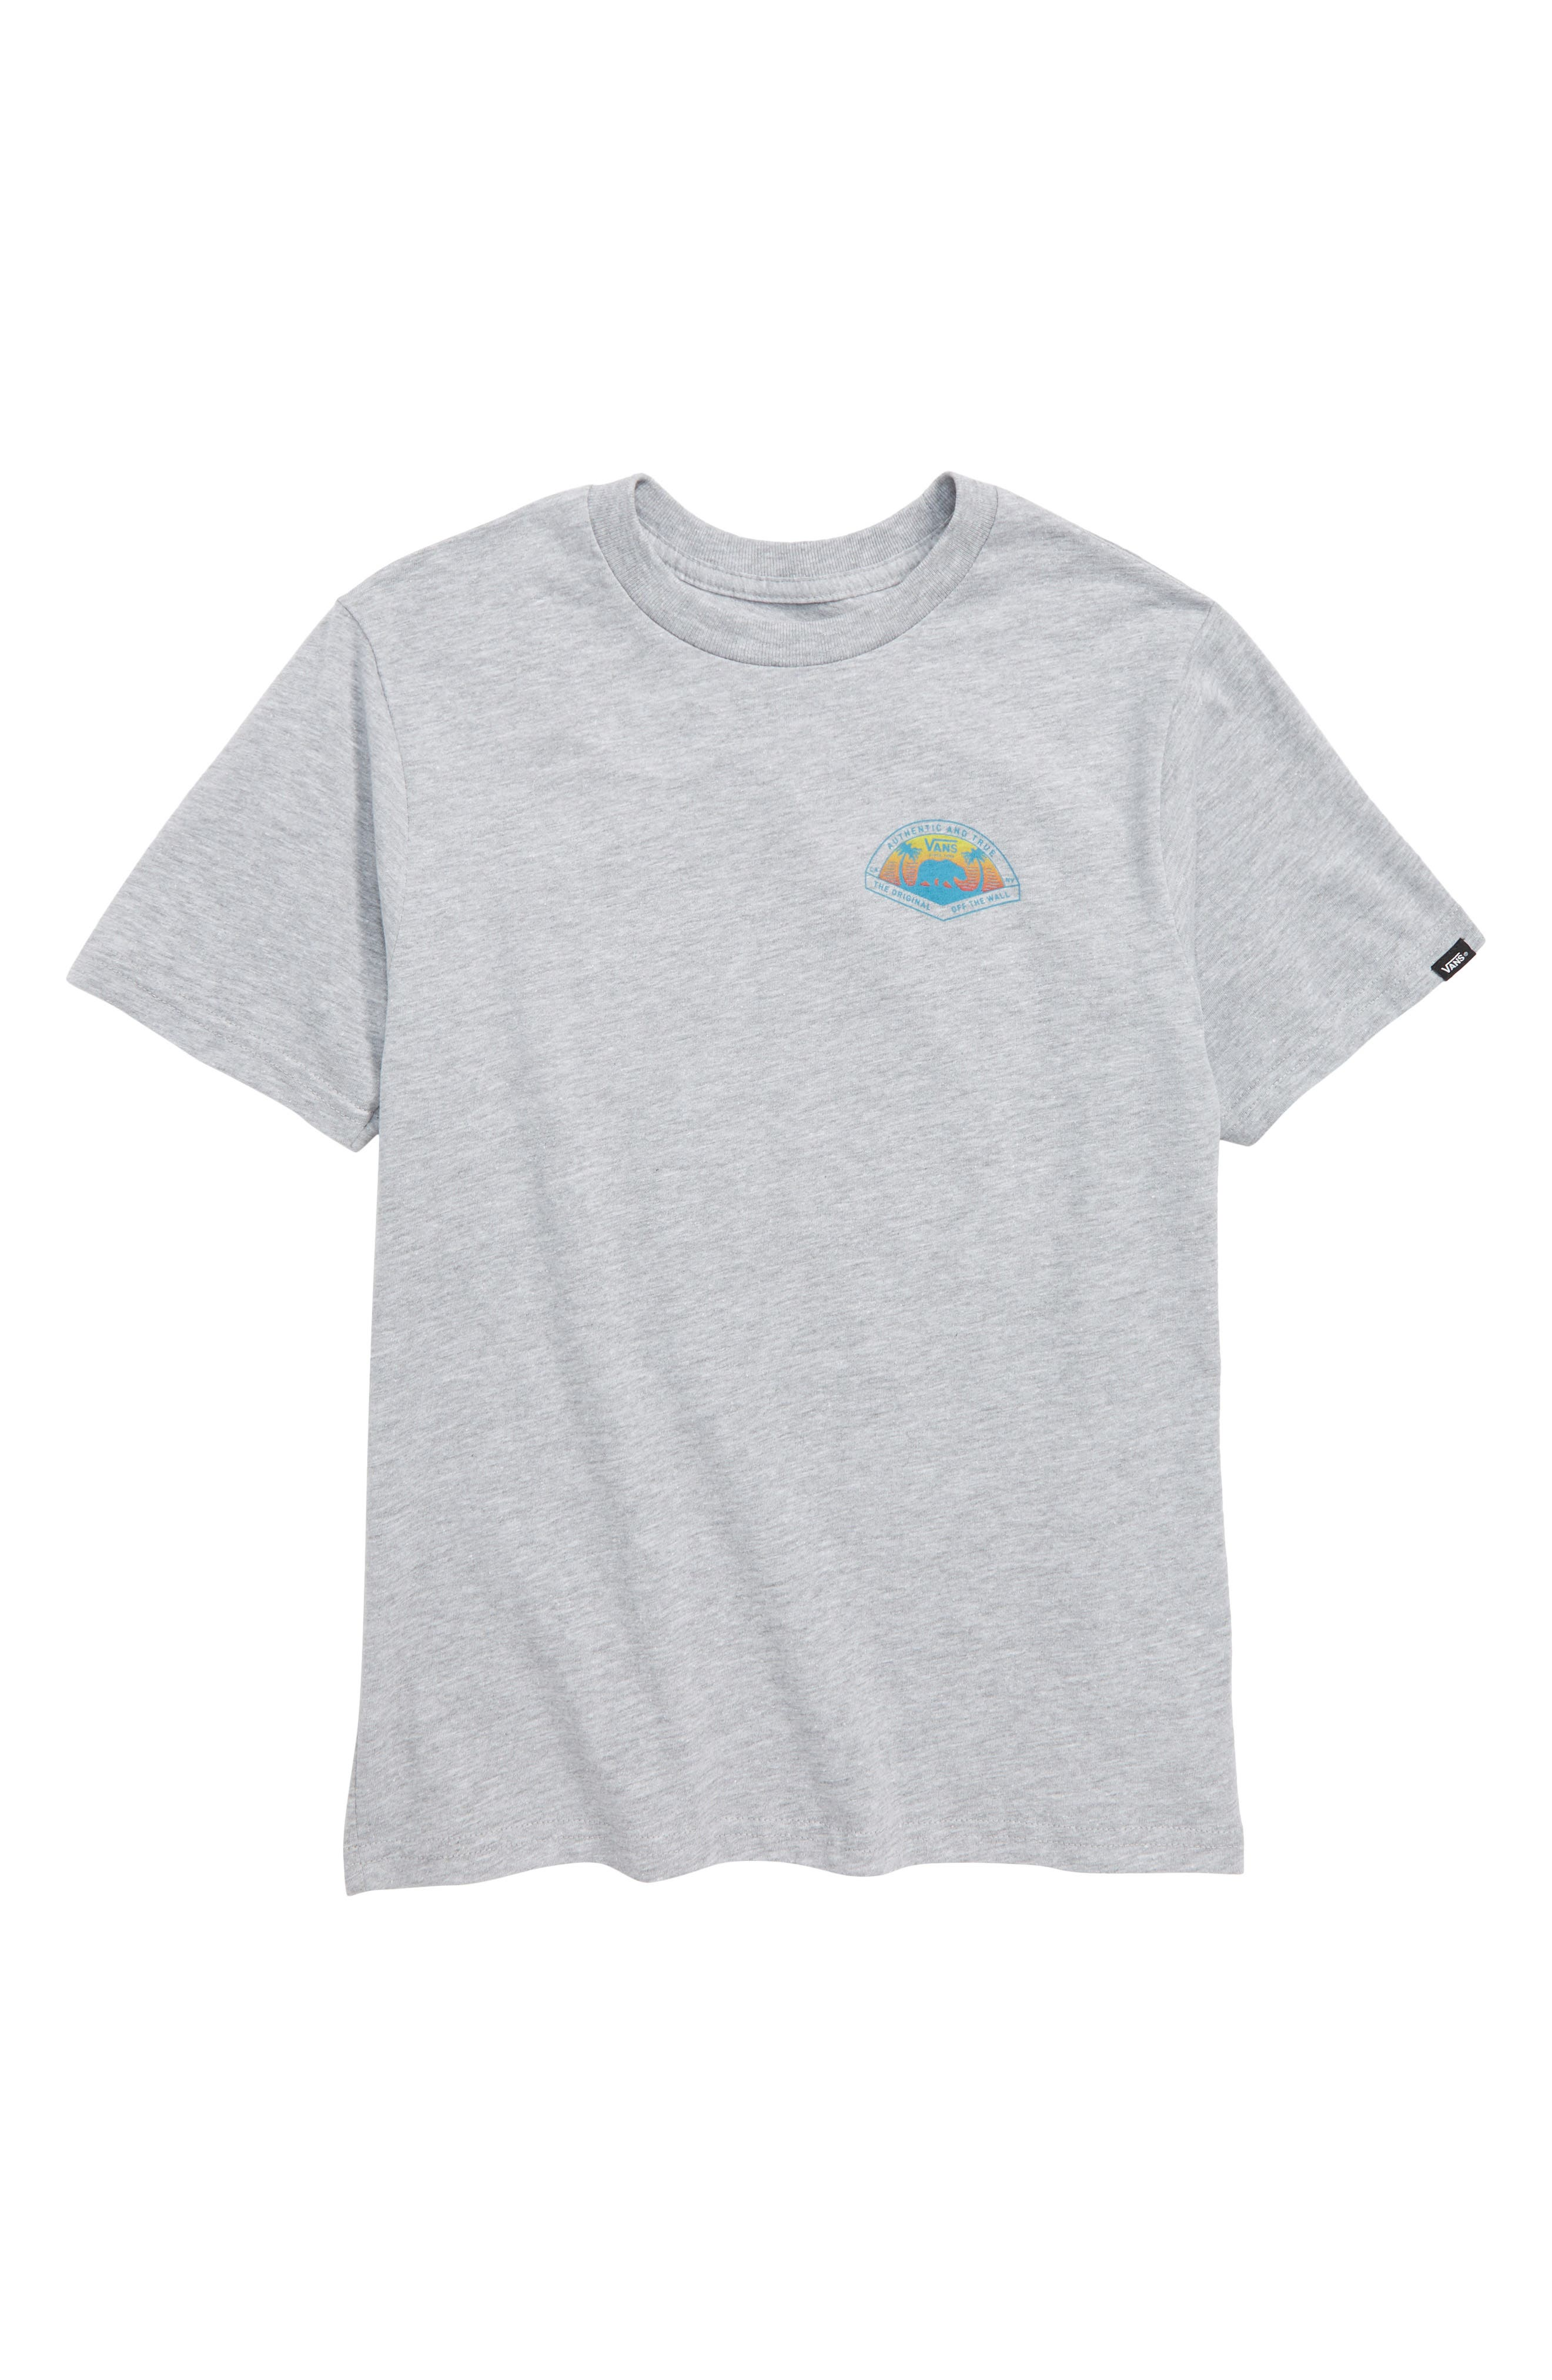 Grizzly Beach Graphic T-Shirt,                         Main,                         color,